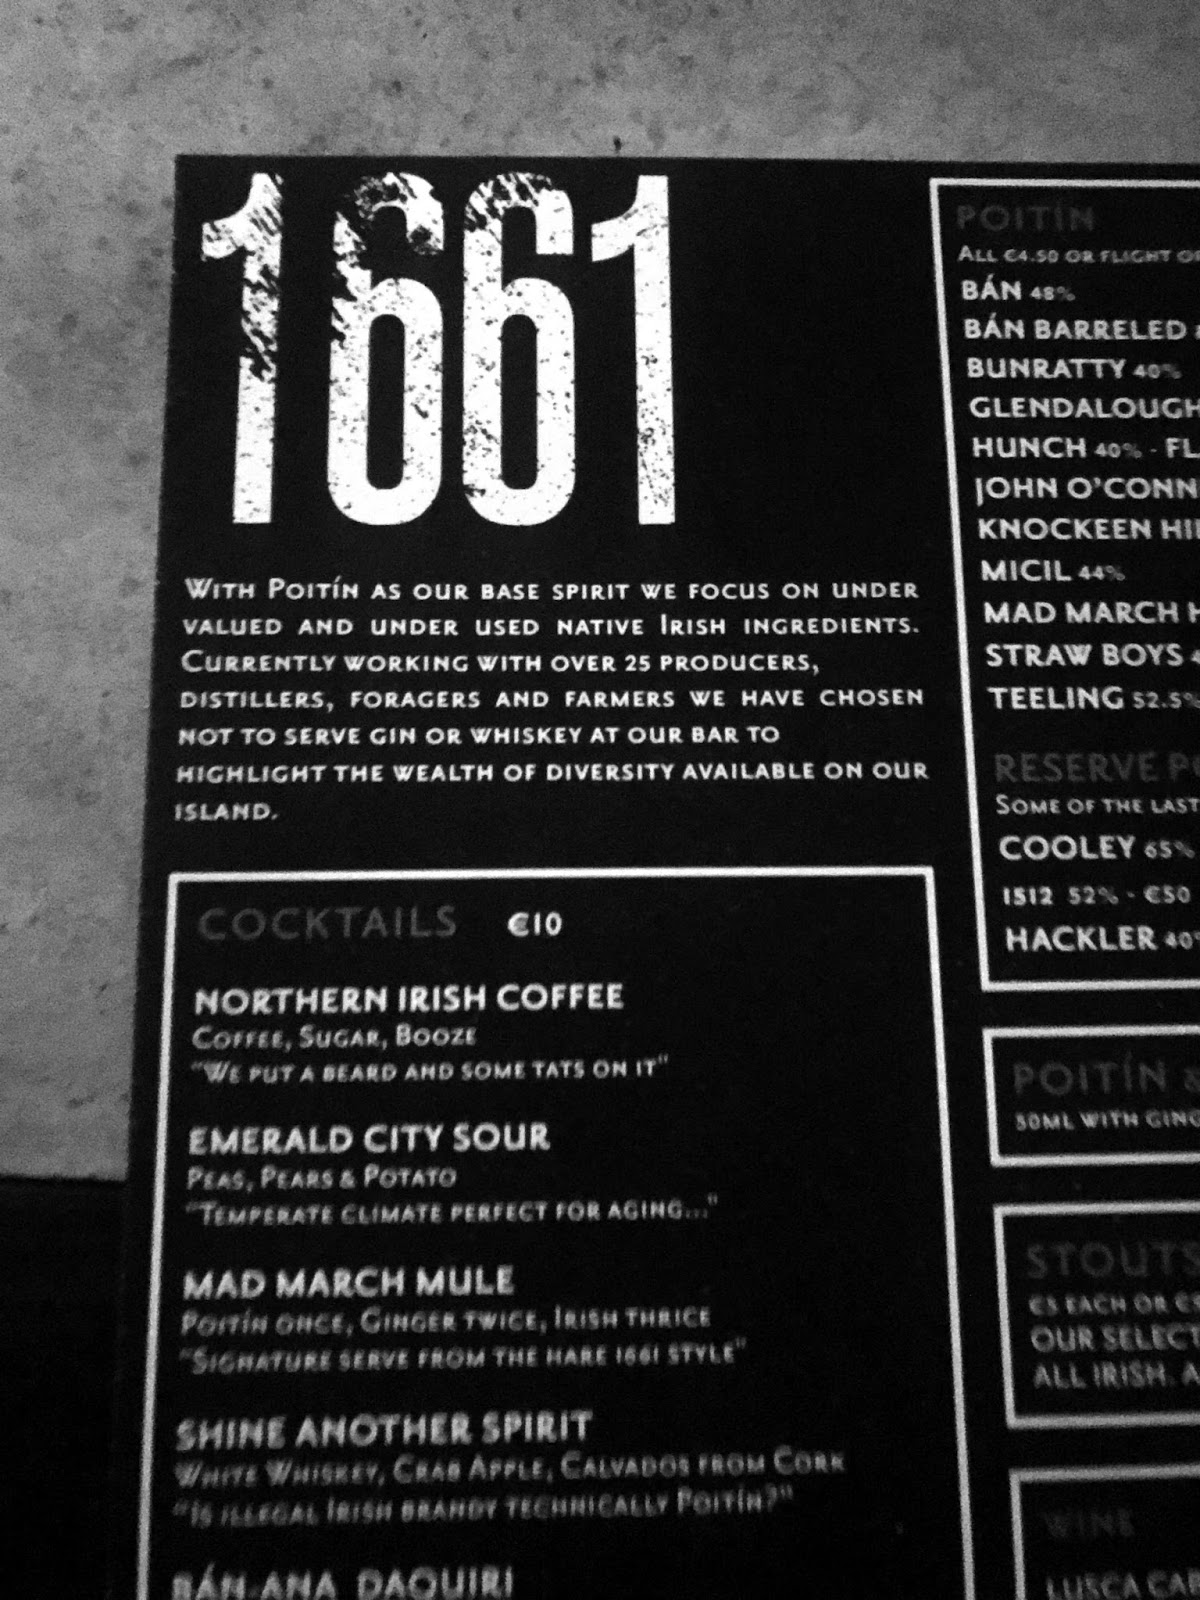 Stitch & Bear - Ban Poitin Bar 1661 - Menu